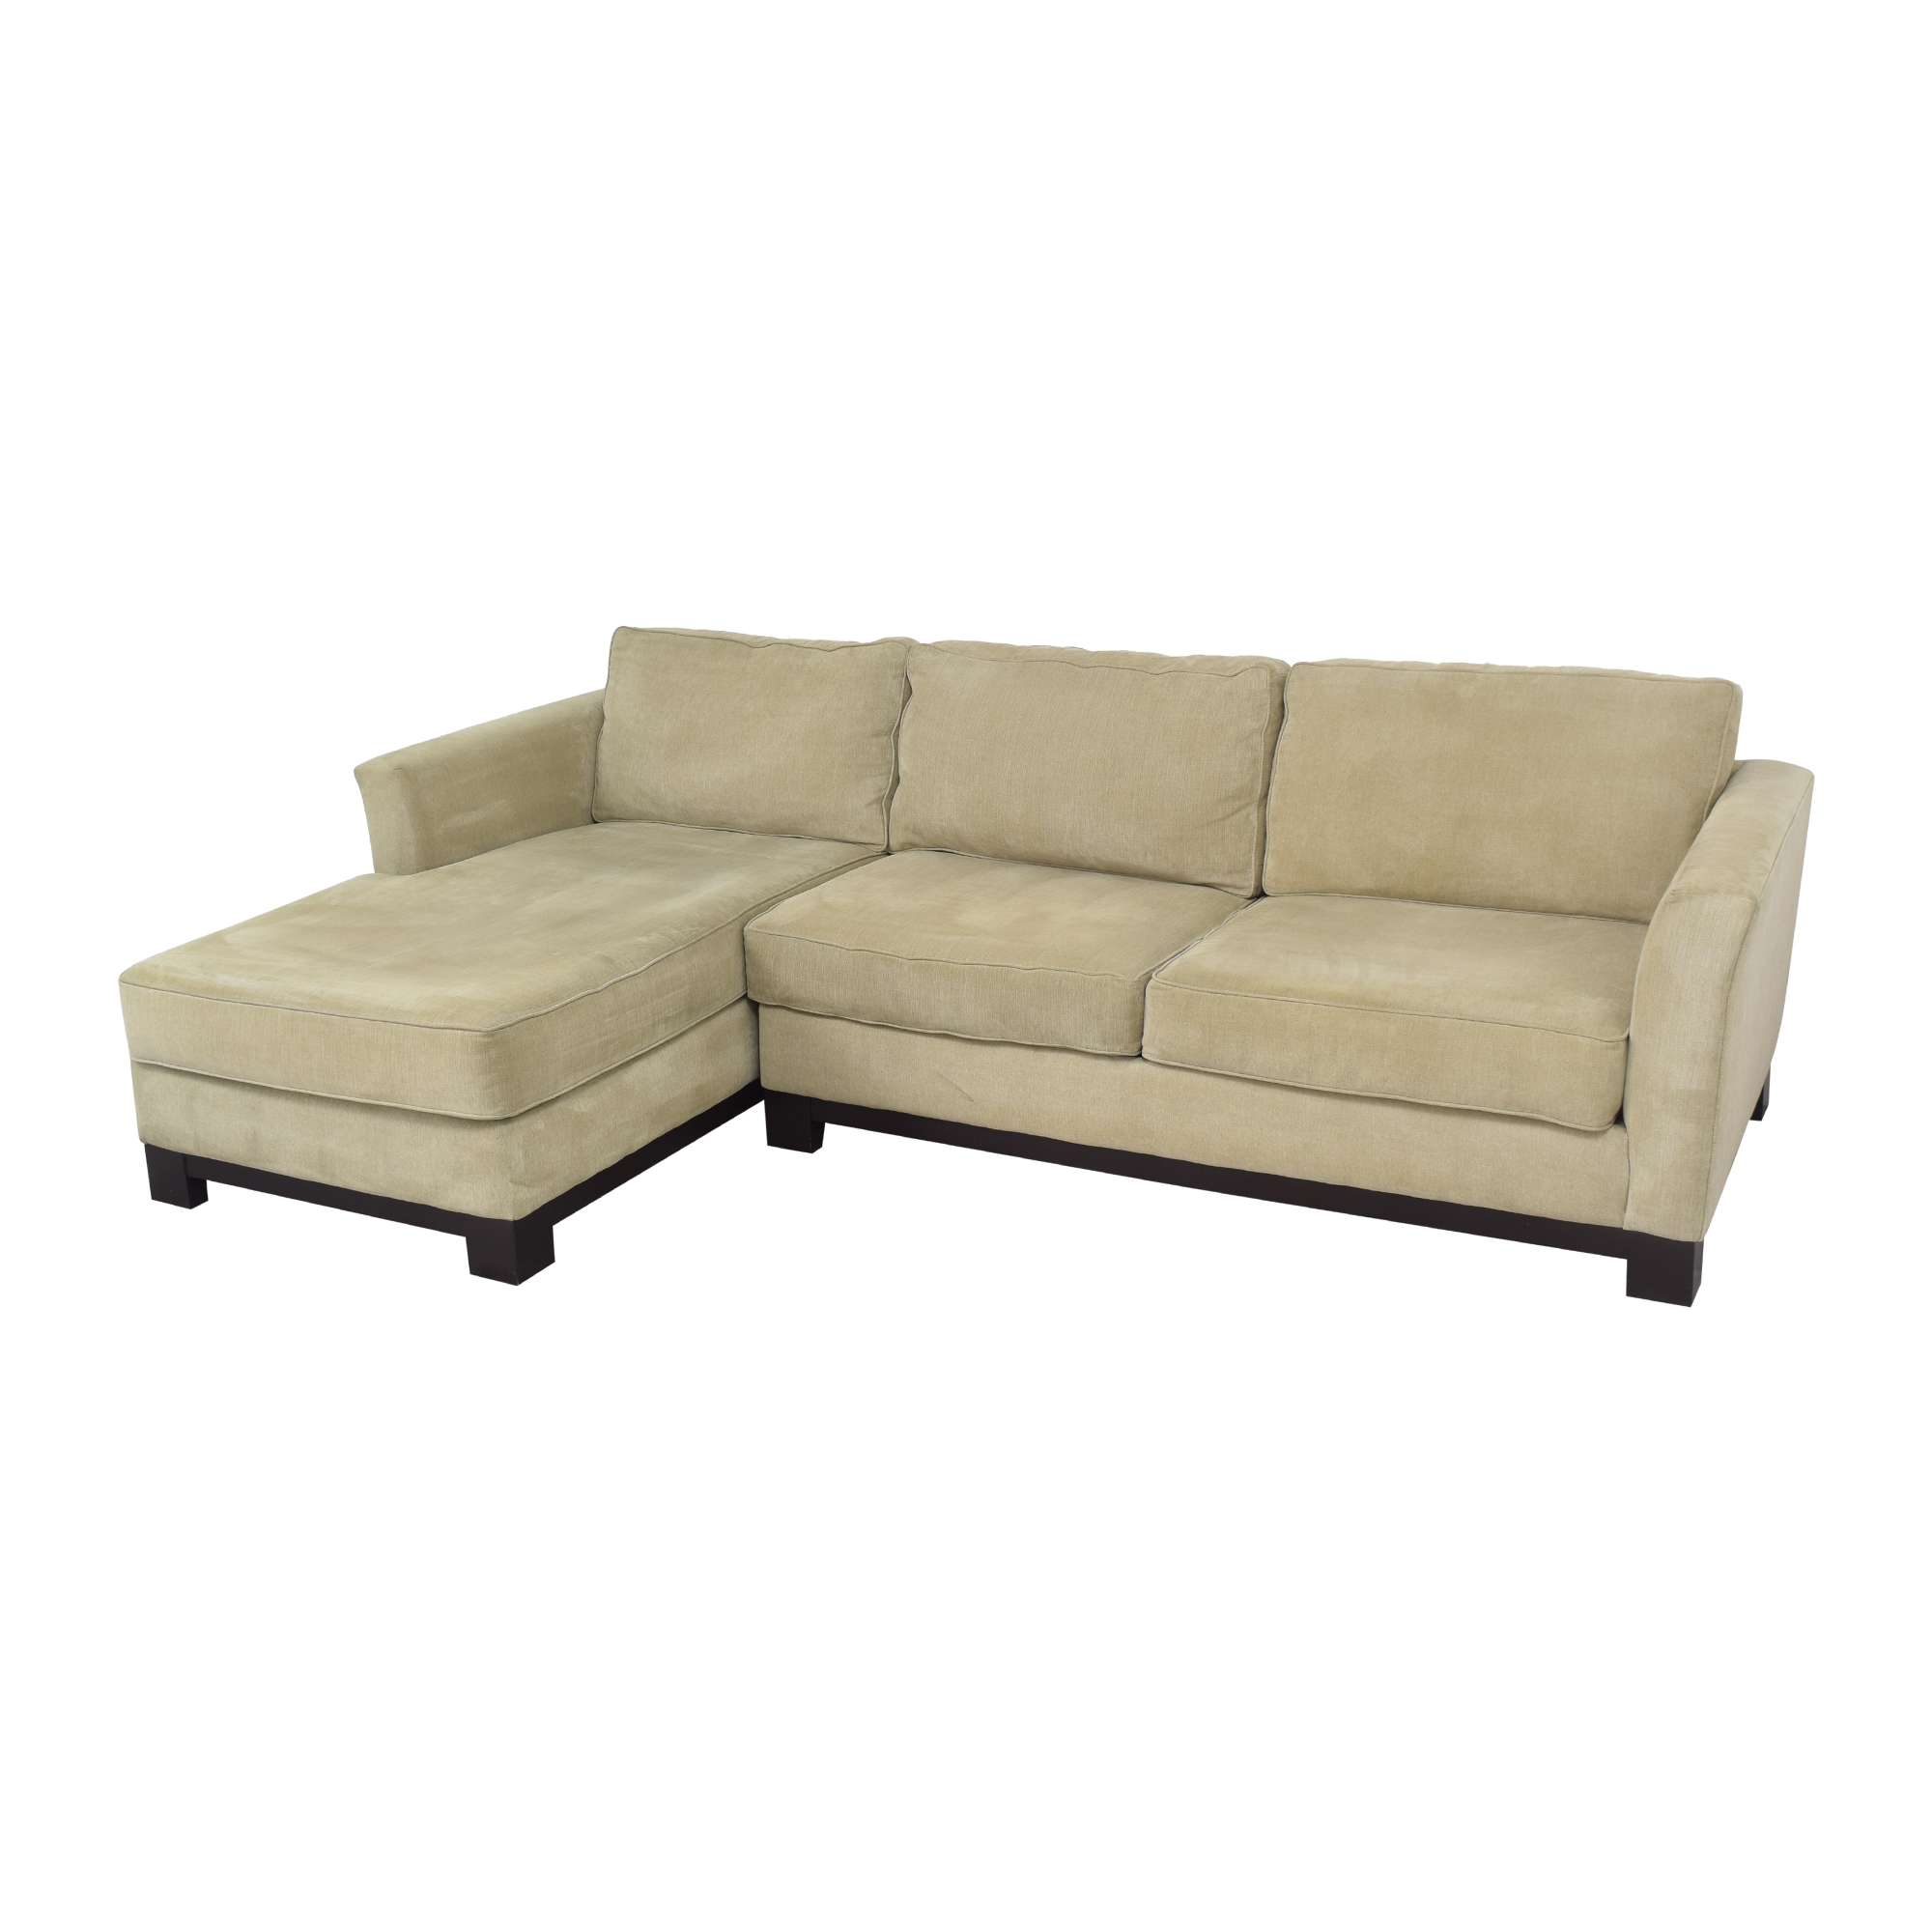 59 off macy s macy s elliot ii two piece chaise sectional sofa sofas